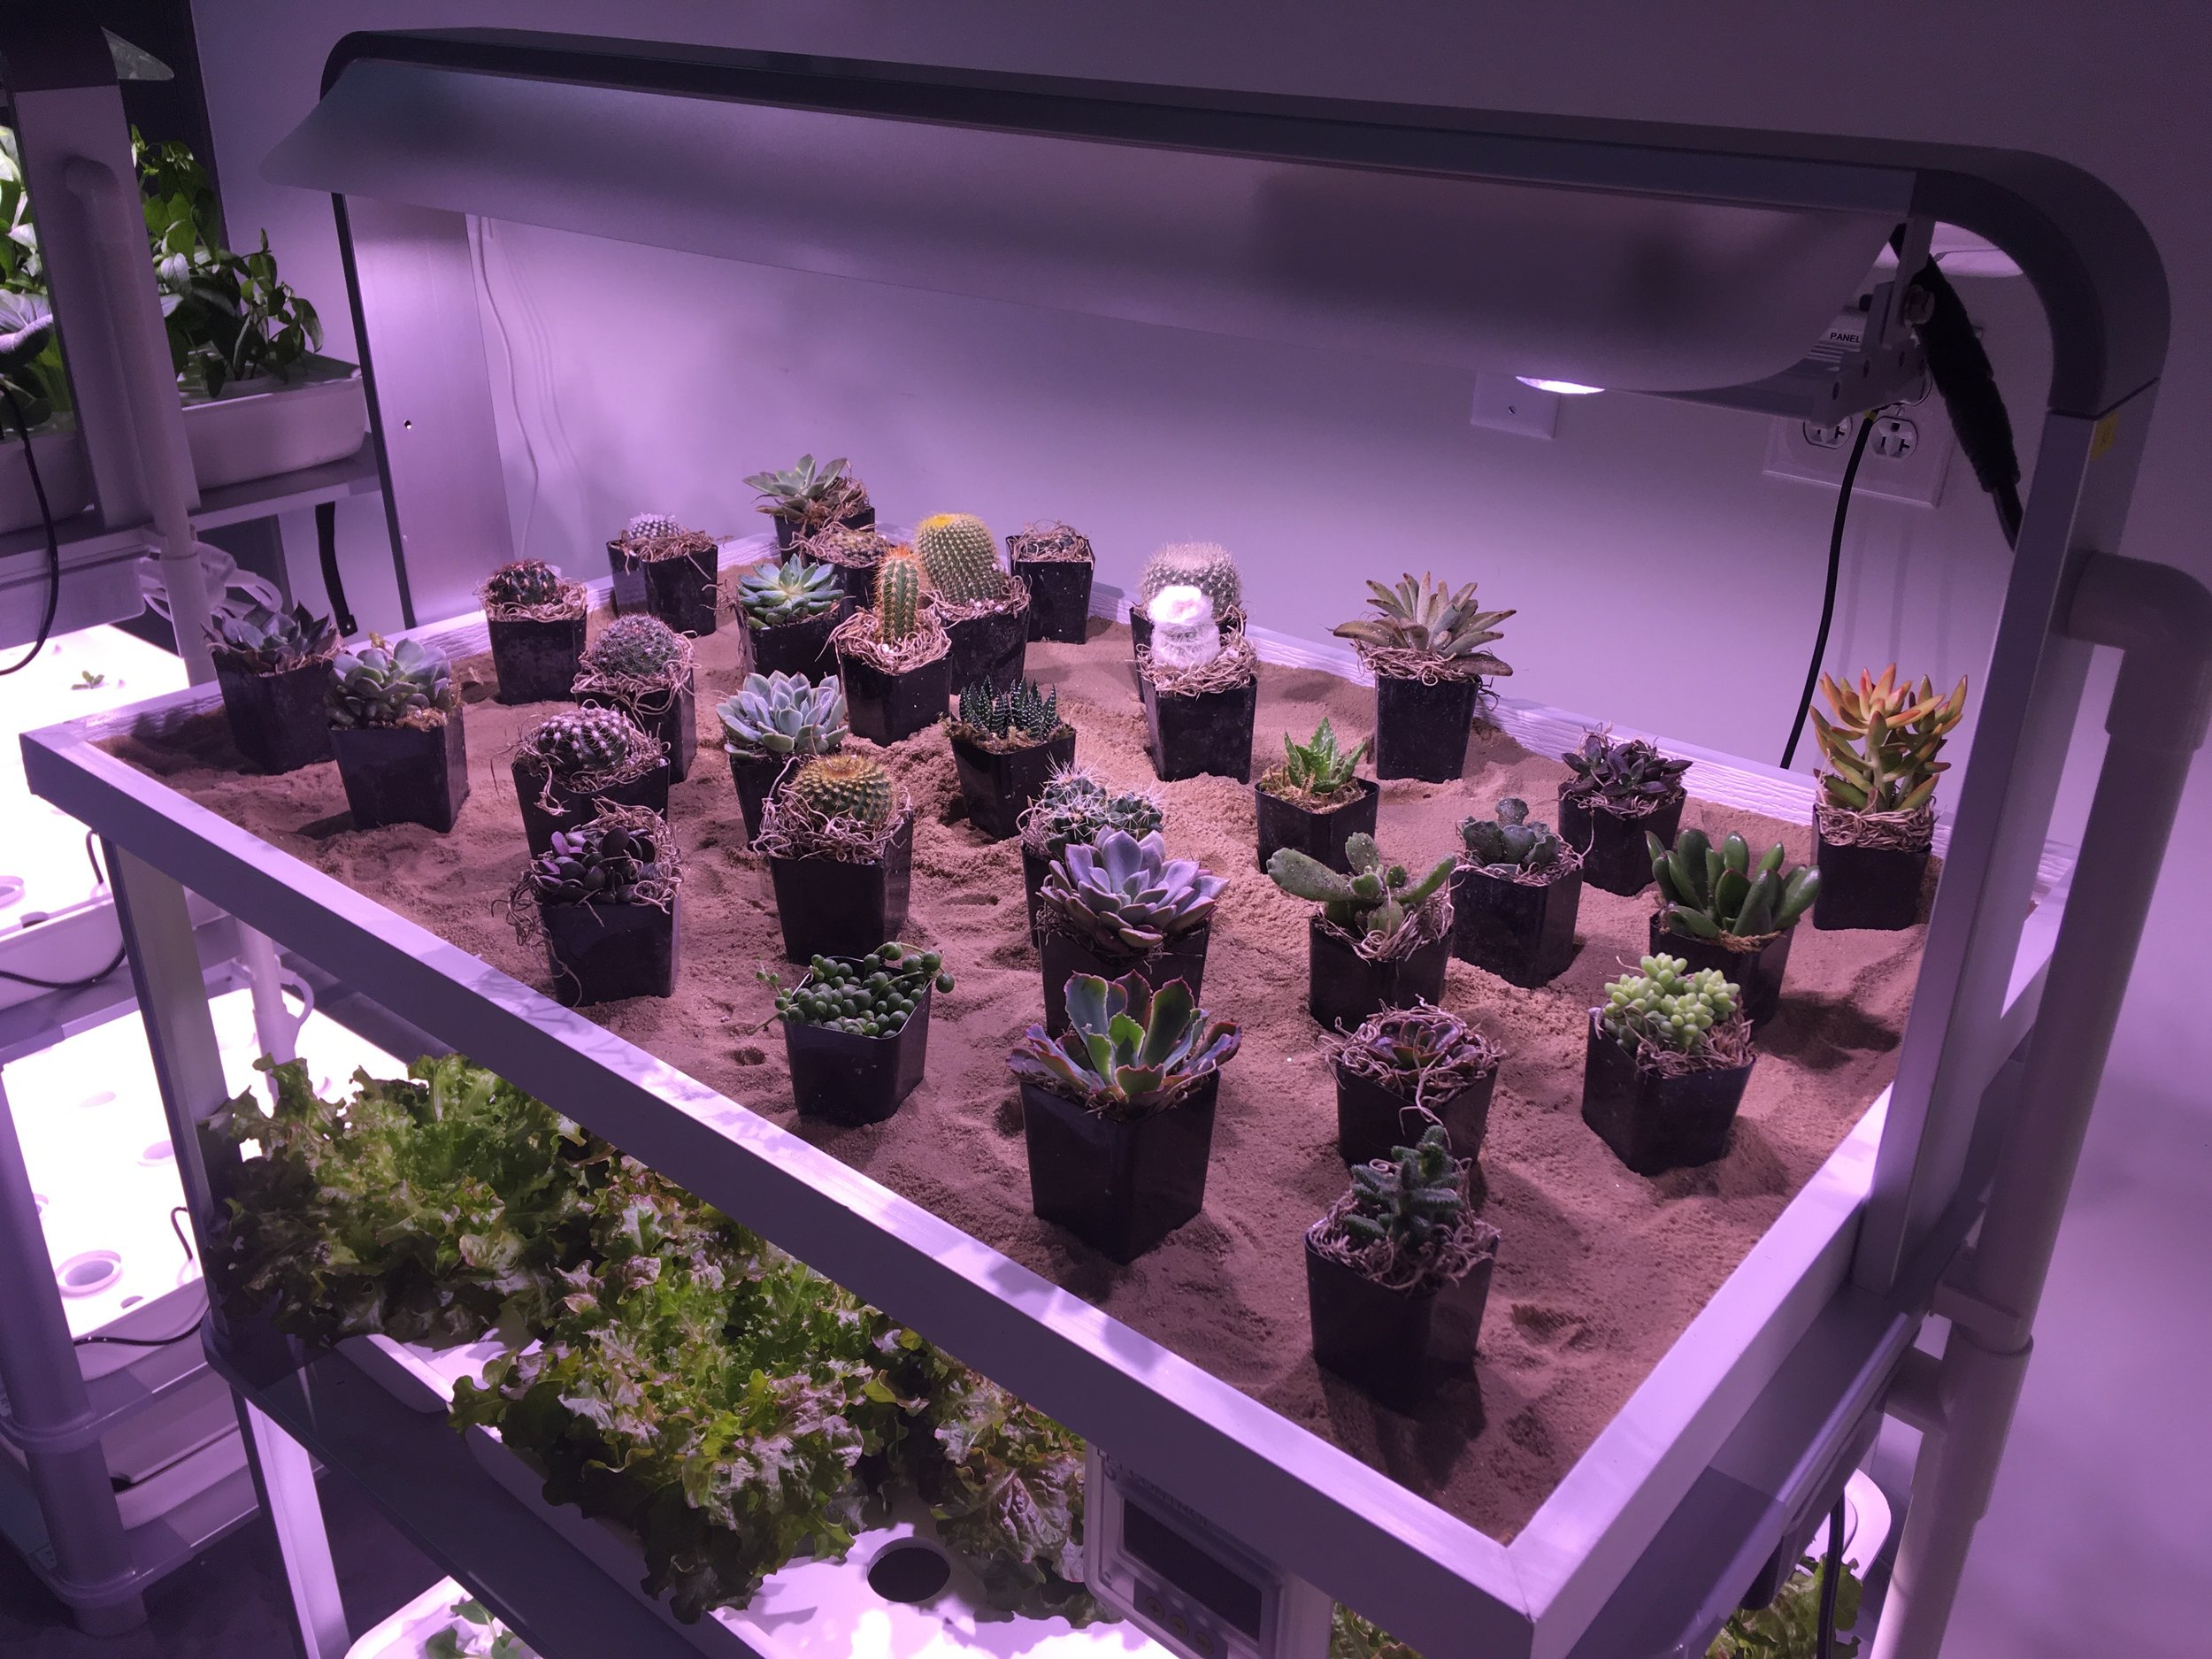 Hydroponic growing is only one aspect of the LF-ONE. The Full-spectrum lighting promotes excellent growth in all types of plants. Here we see cacti and succulents thriving.